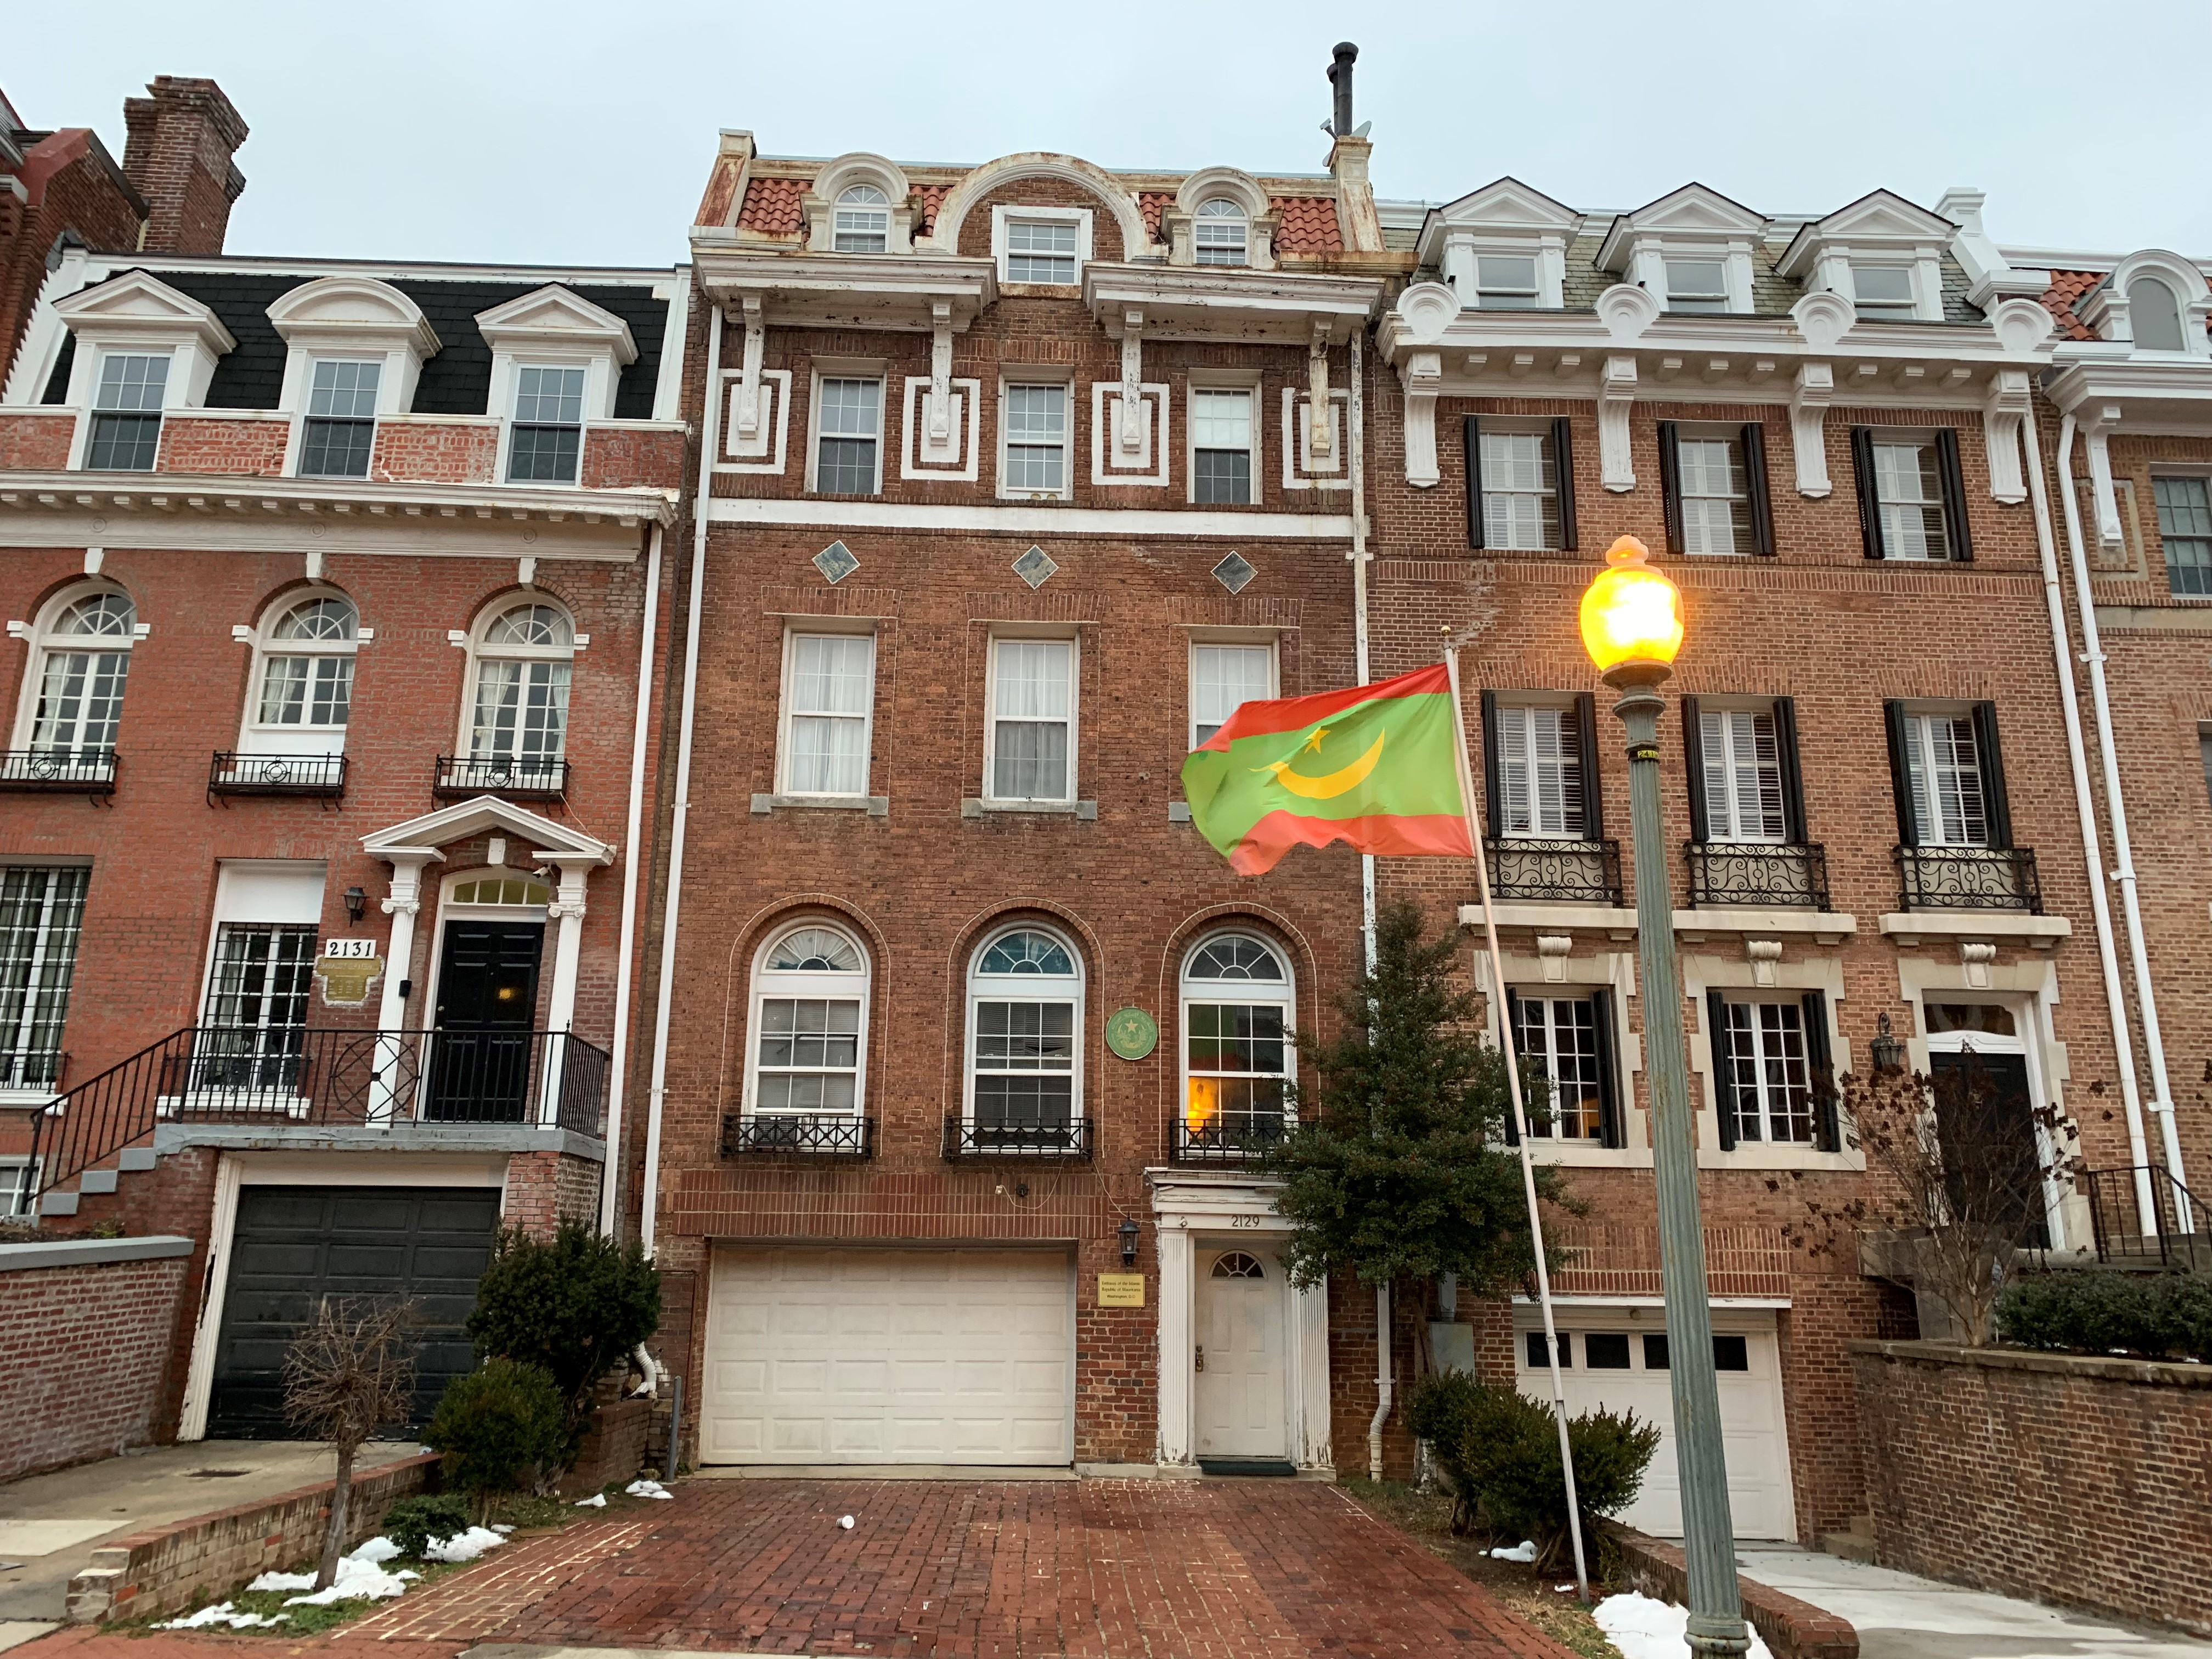 Real Estate and Homes For Sale Near the Embassy of Mauritania in Washington, DC. Artyom Shmatko Luxury Real Estate Agent